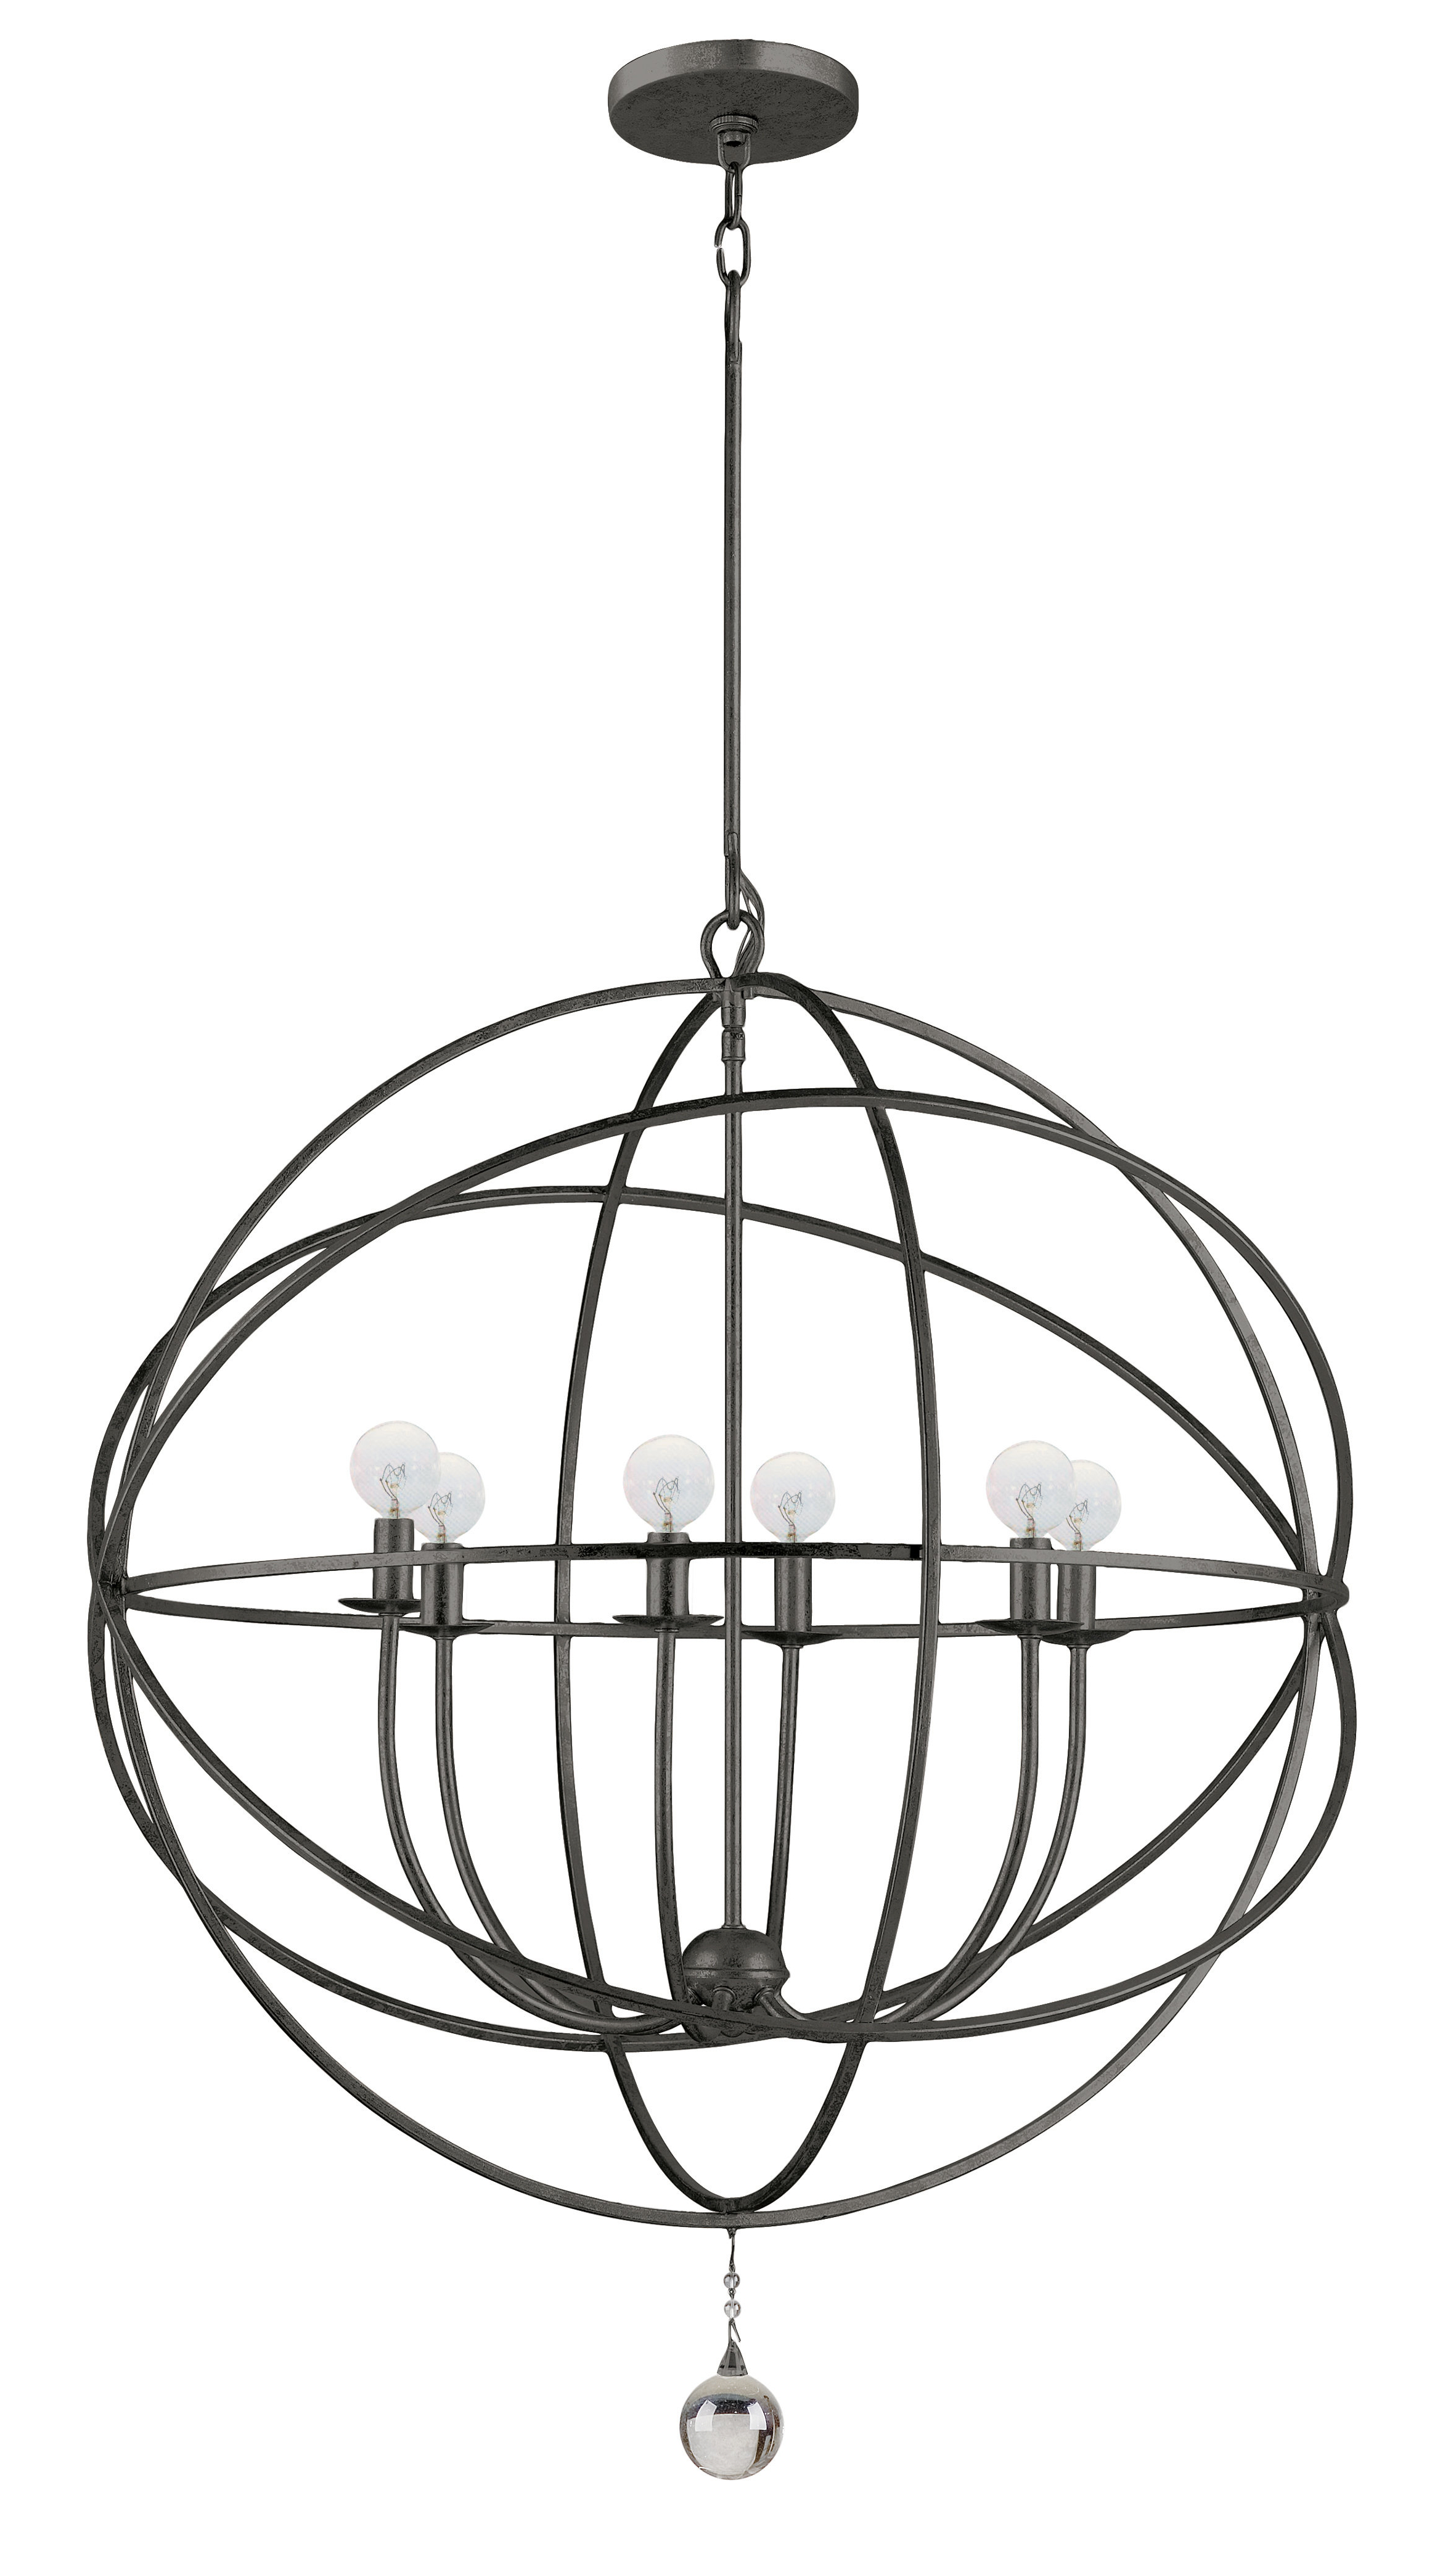 Best And Newest Gregoire 6 Light Globe Chandelier With Regard To Alden 6 Light Globe Chandeliers (View 9 of 25)